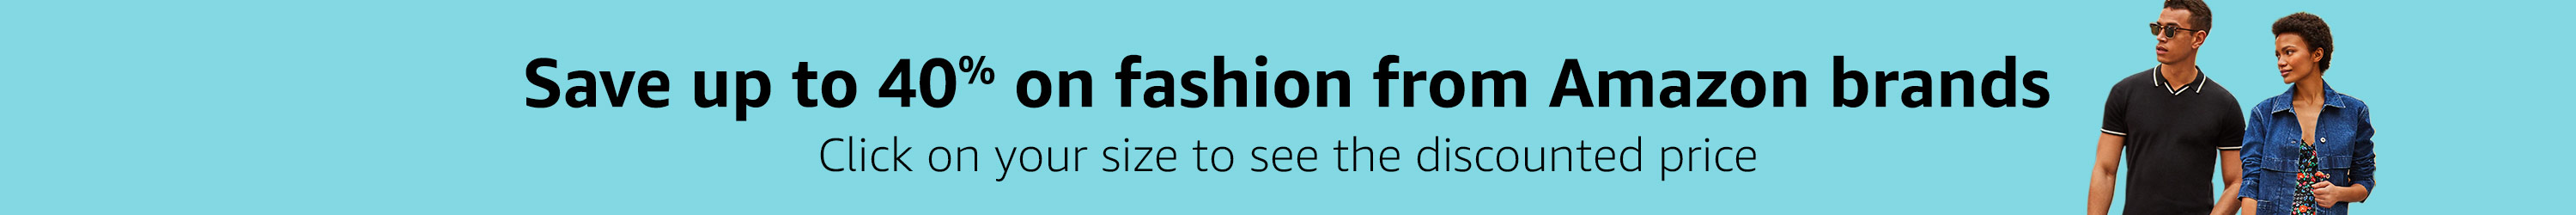 Save up to 40% on our fashion brands